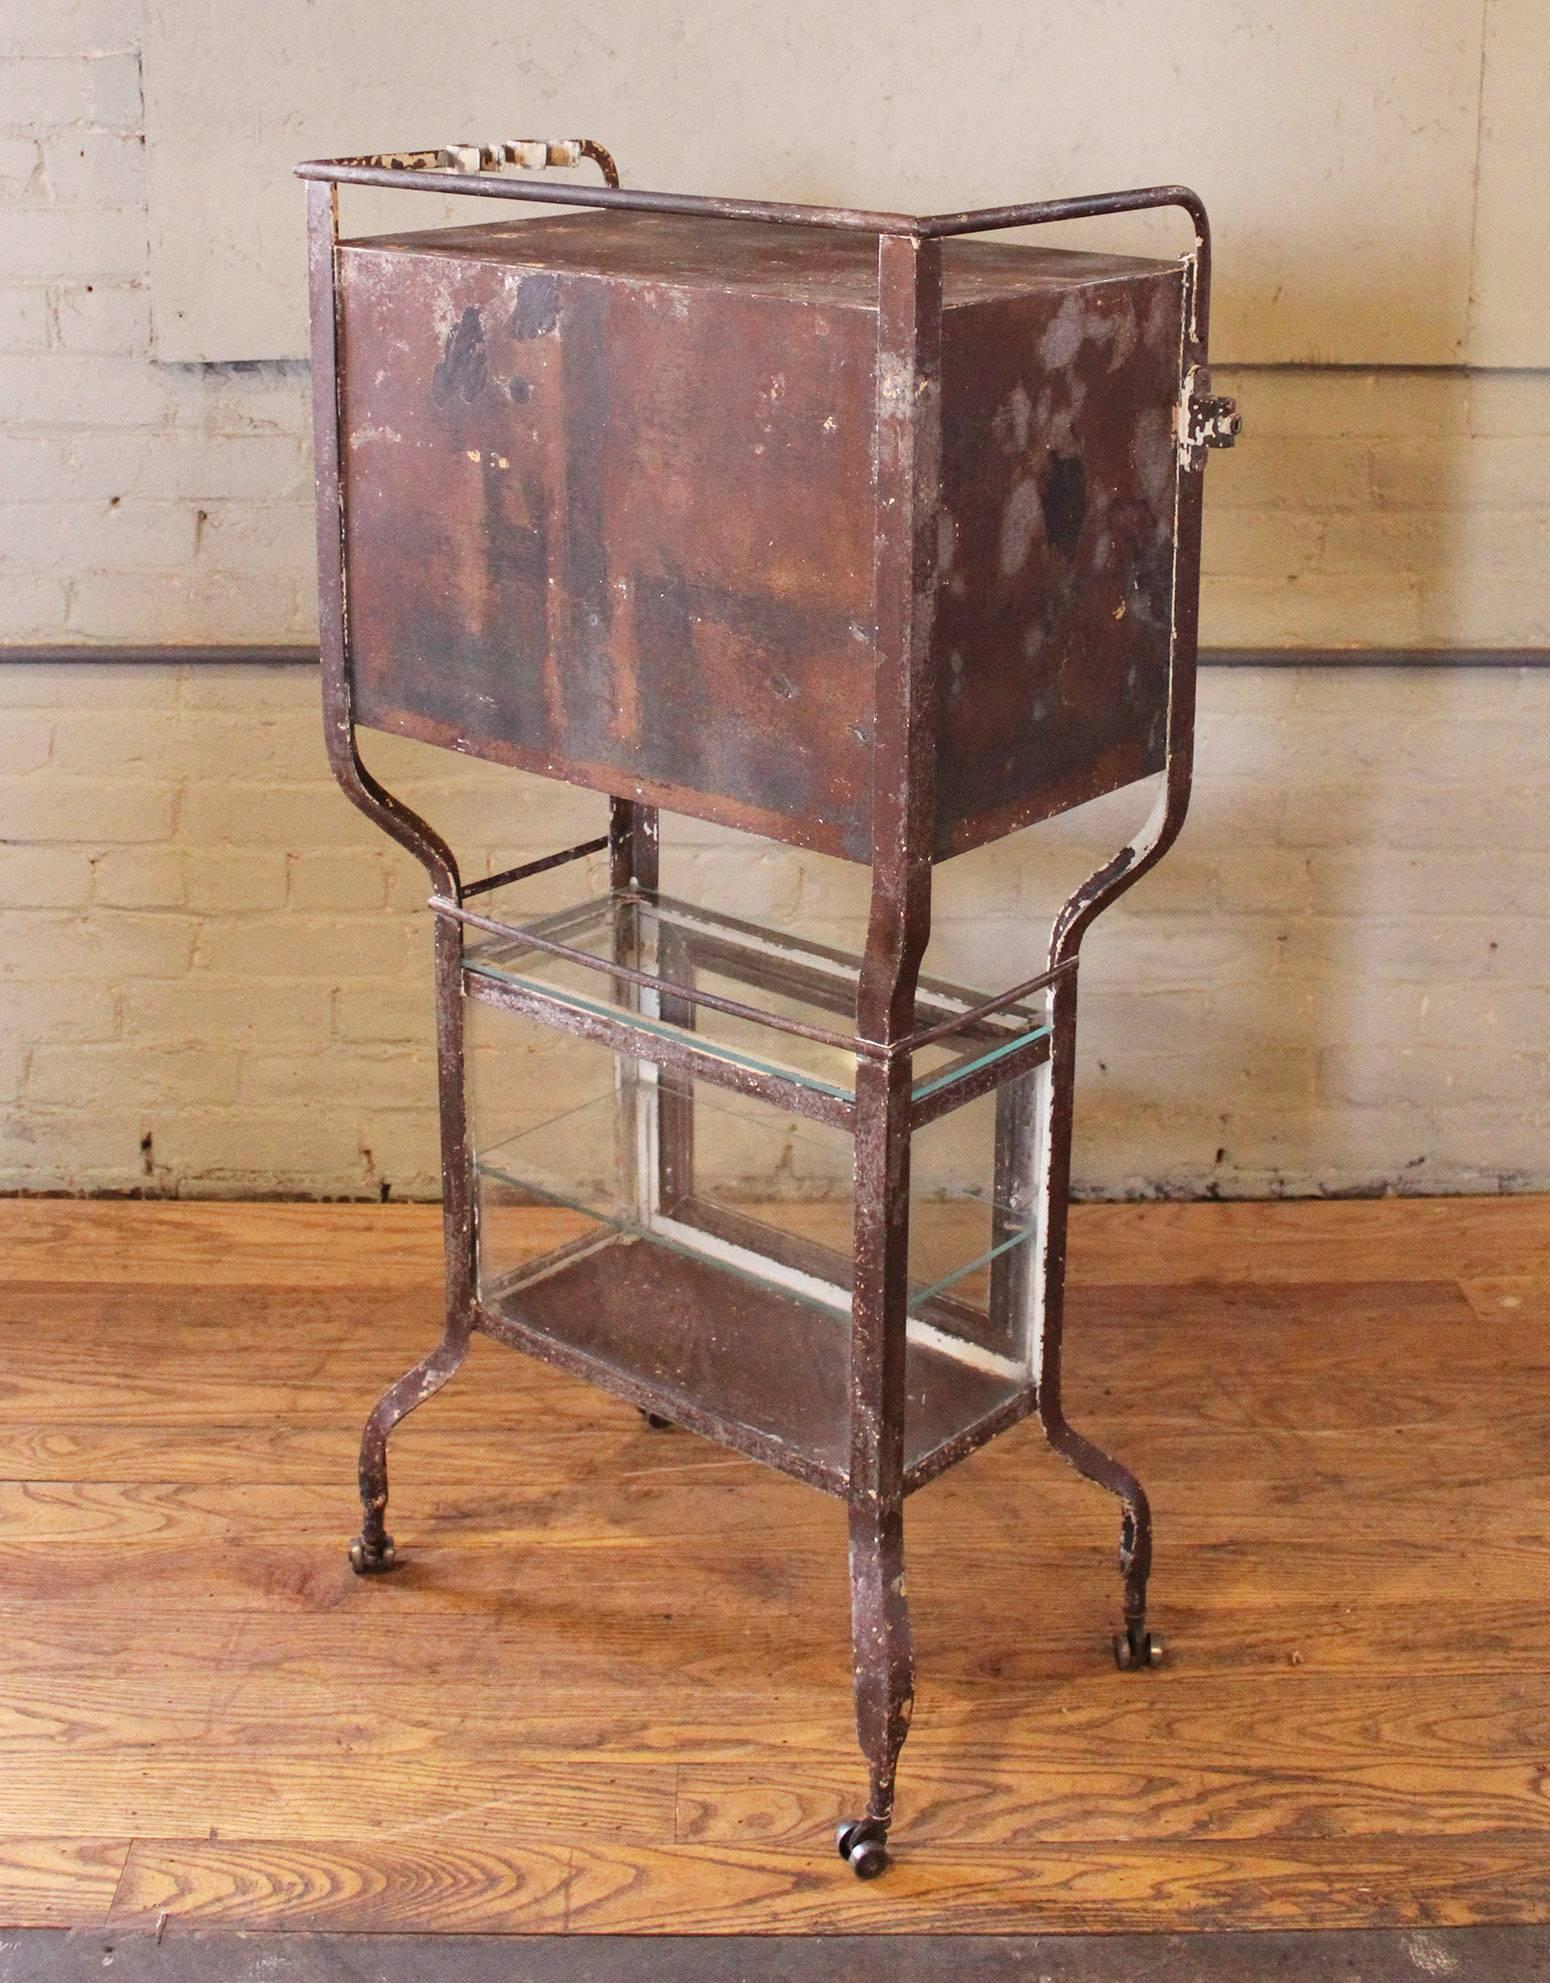 Vintage Industrial Rusted Painted Metal and Glass Medical Cabinet Stand or  Cart at 1stdibs - Vintage Industrial Rusted Painted Metal And Glass Medical Cabinet